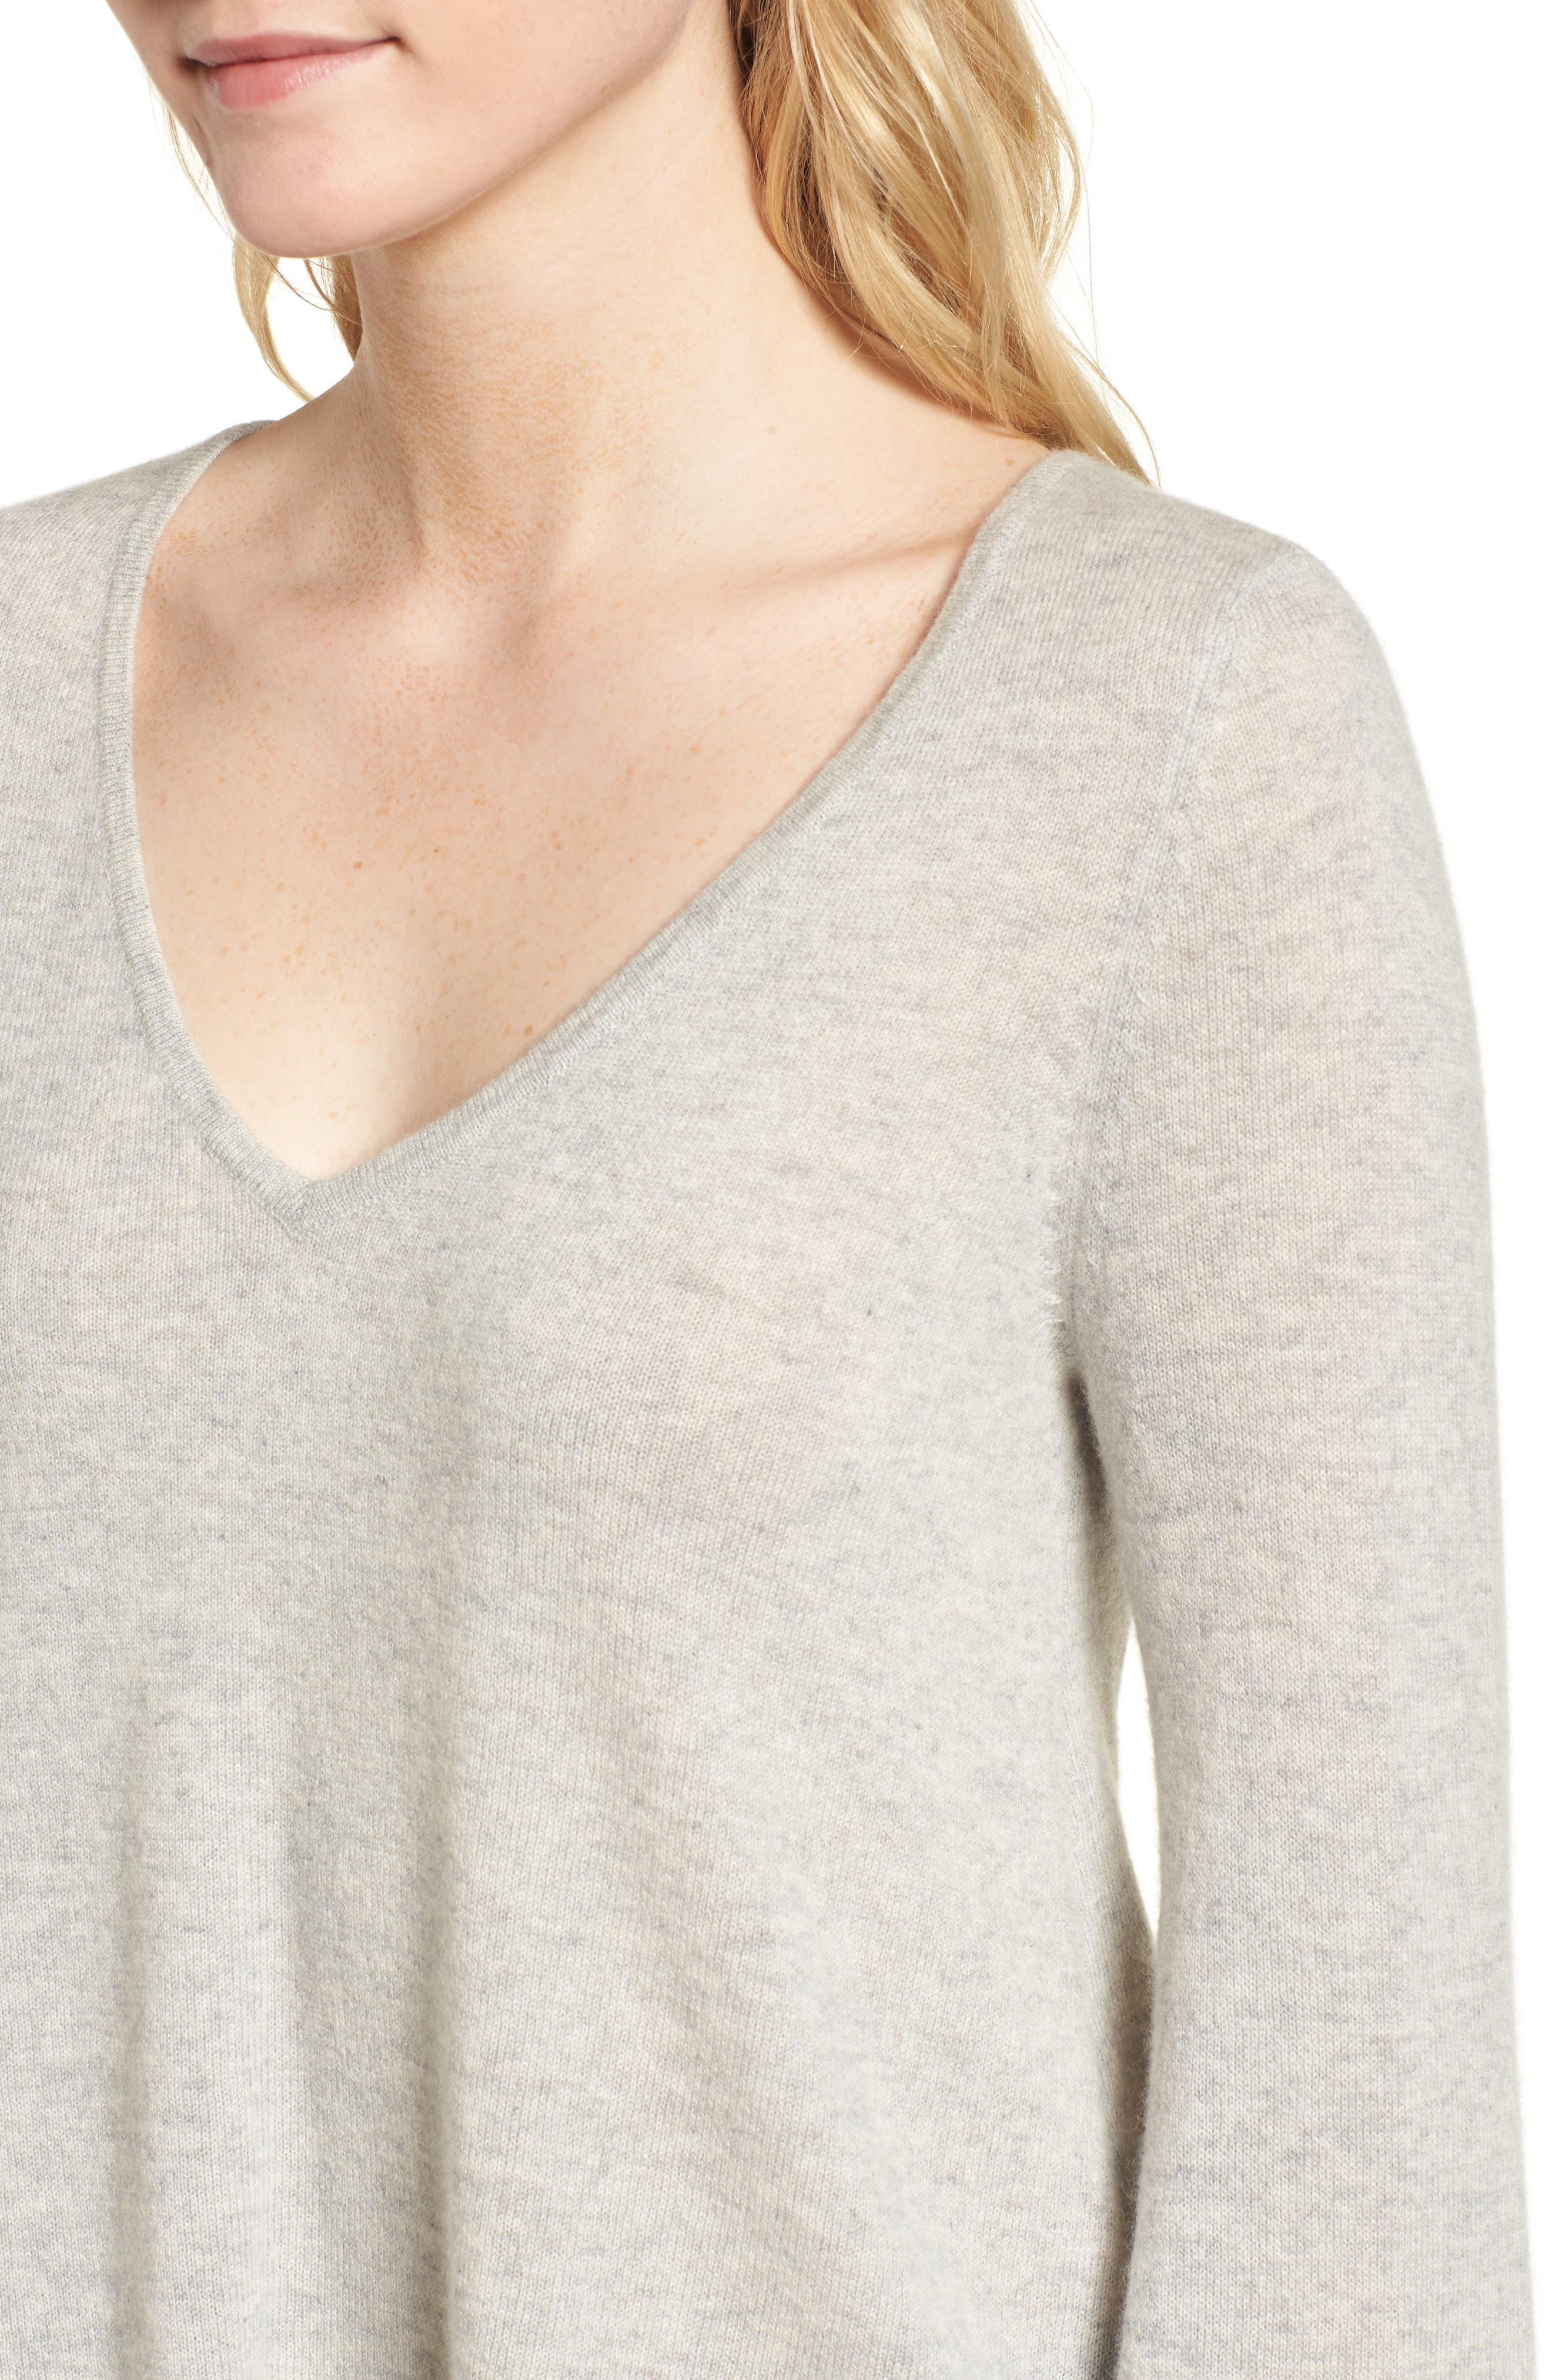 Marylee Cashmere Top,                             Alternate thumbnail 4, color,                             037